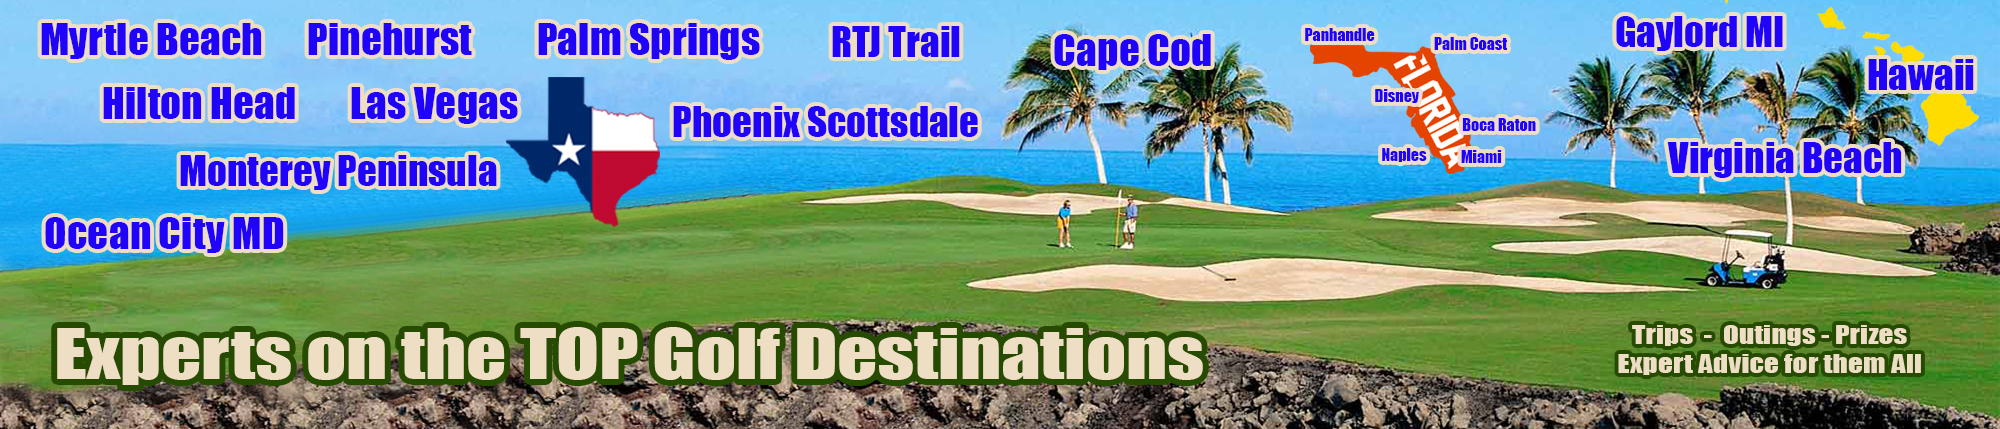 Golf Destination Prize Insurance Rate